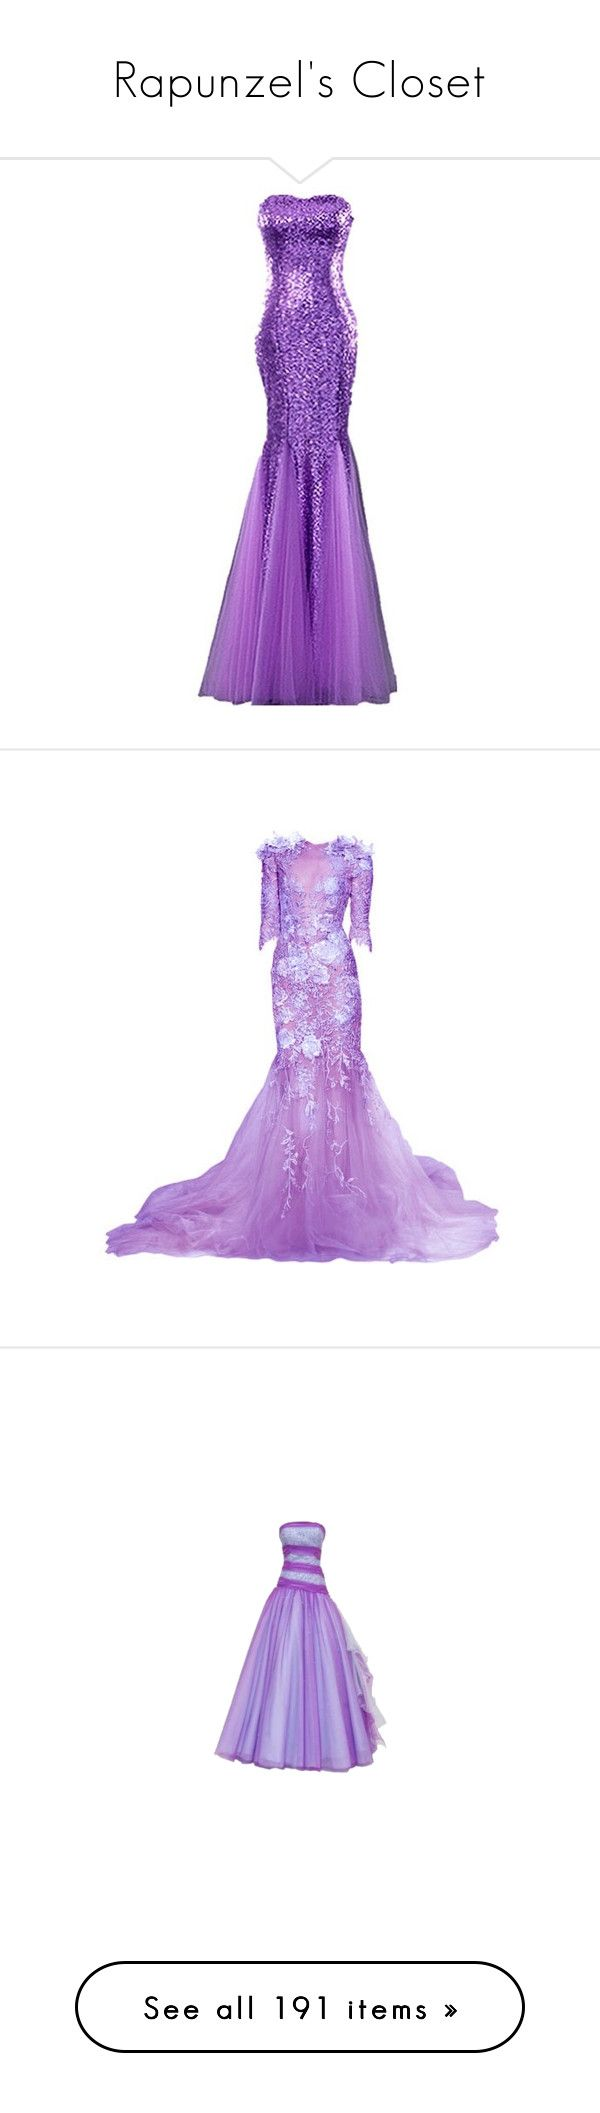 """""""Rapunzel's Closet"""" by summersurf2014 ❤ liked on Polyvore featuring dresses, gowns, purple, sparkle, night out dresses, going out dresses, ball dresses, prom party dresses, purple party dresses and long dresses"""